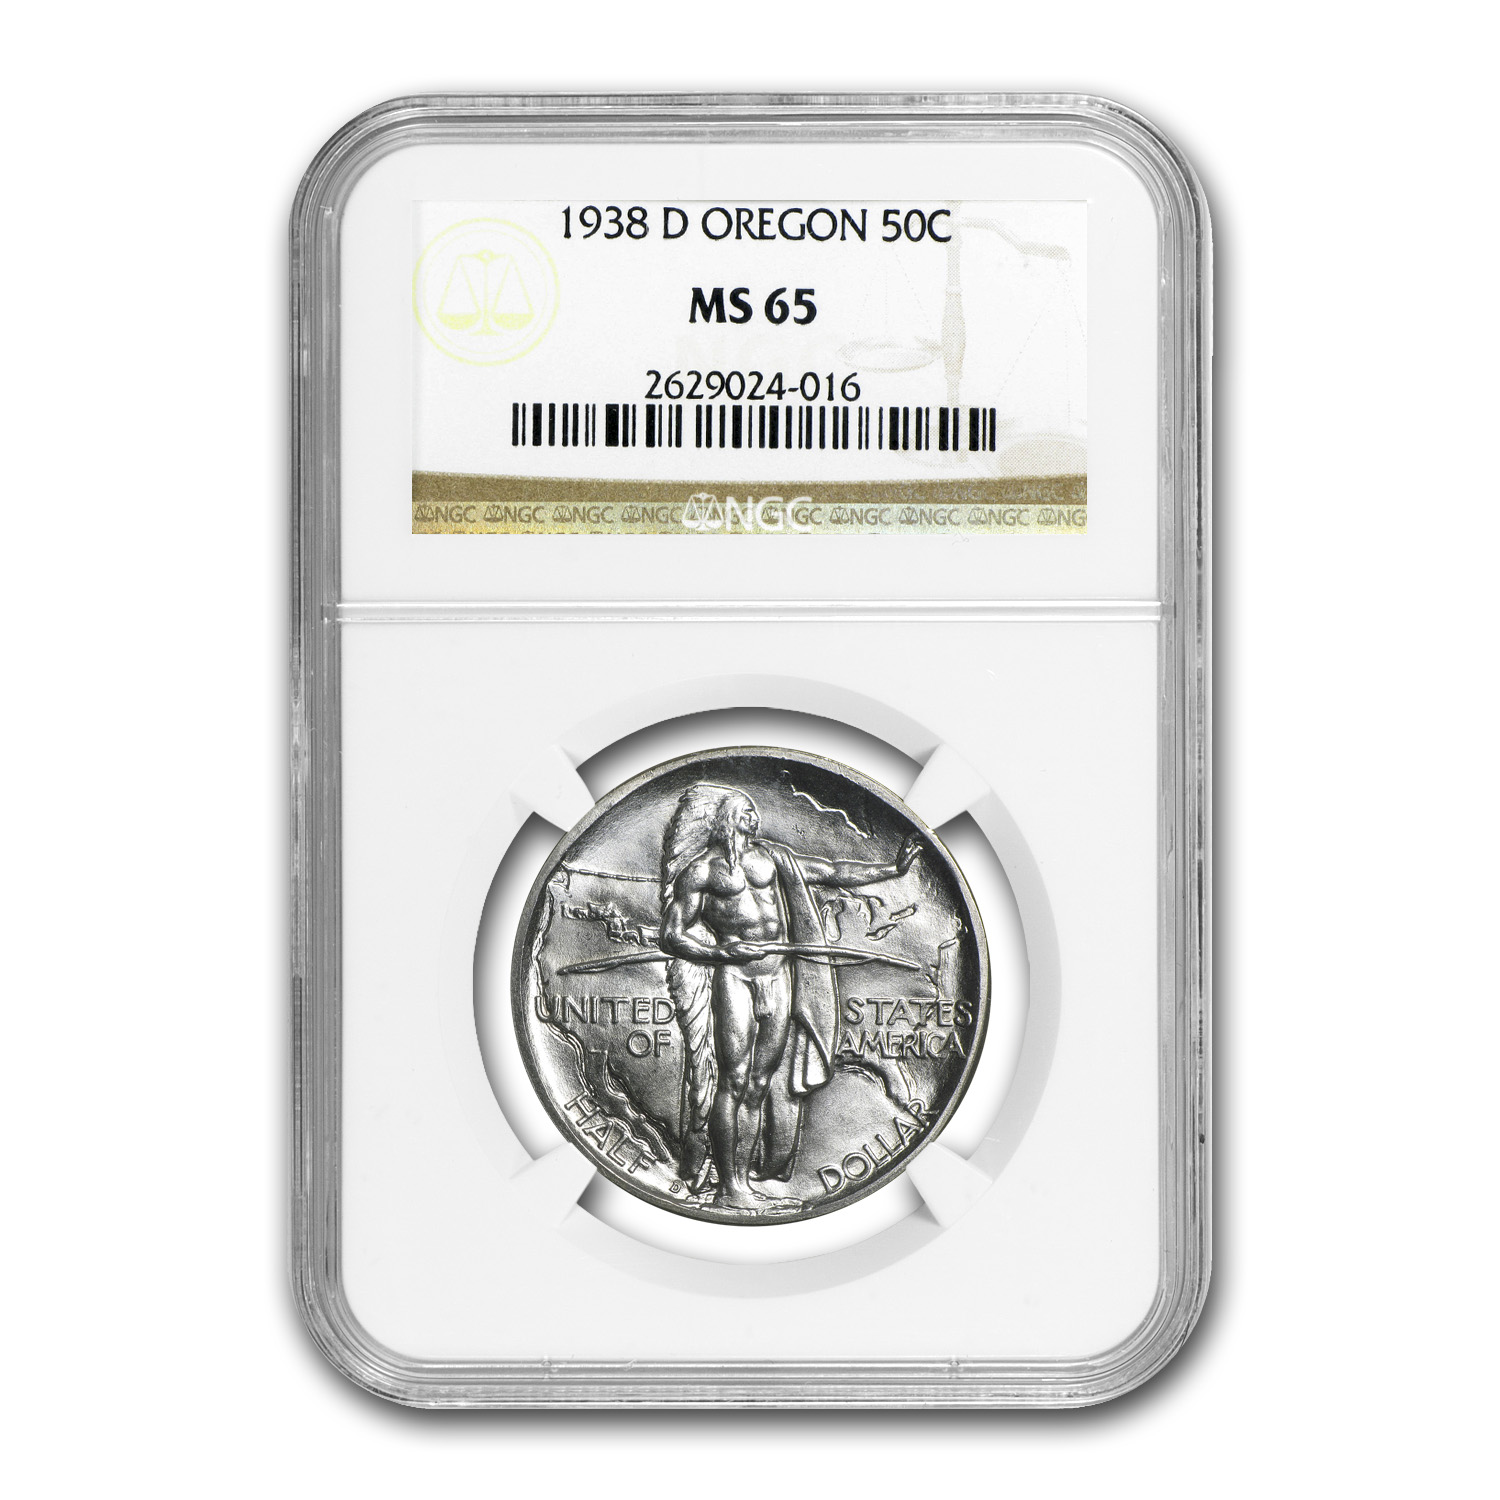 1938-P-D-S Oregon Trail Half Dollar 3-Coin Set MS-65/65/65 NGC